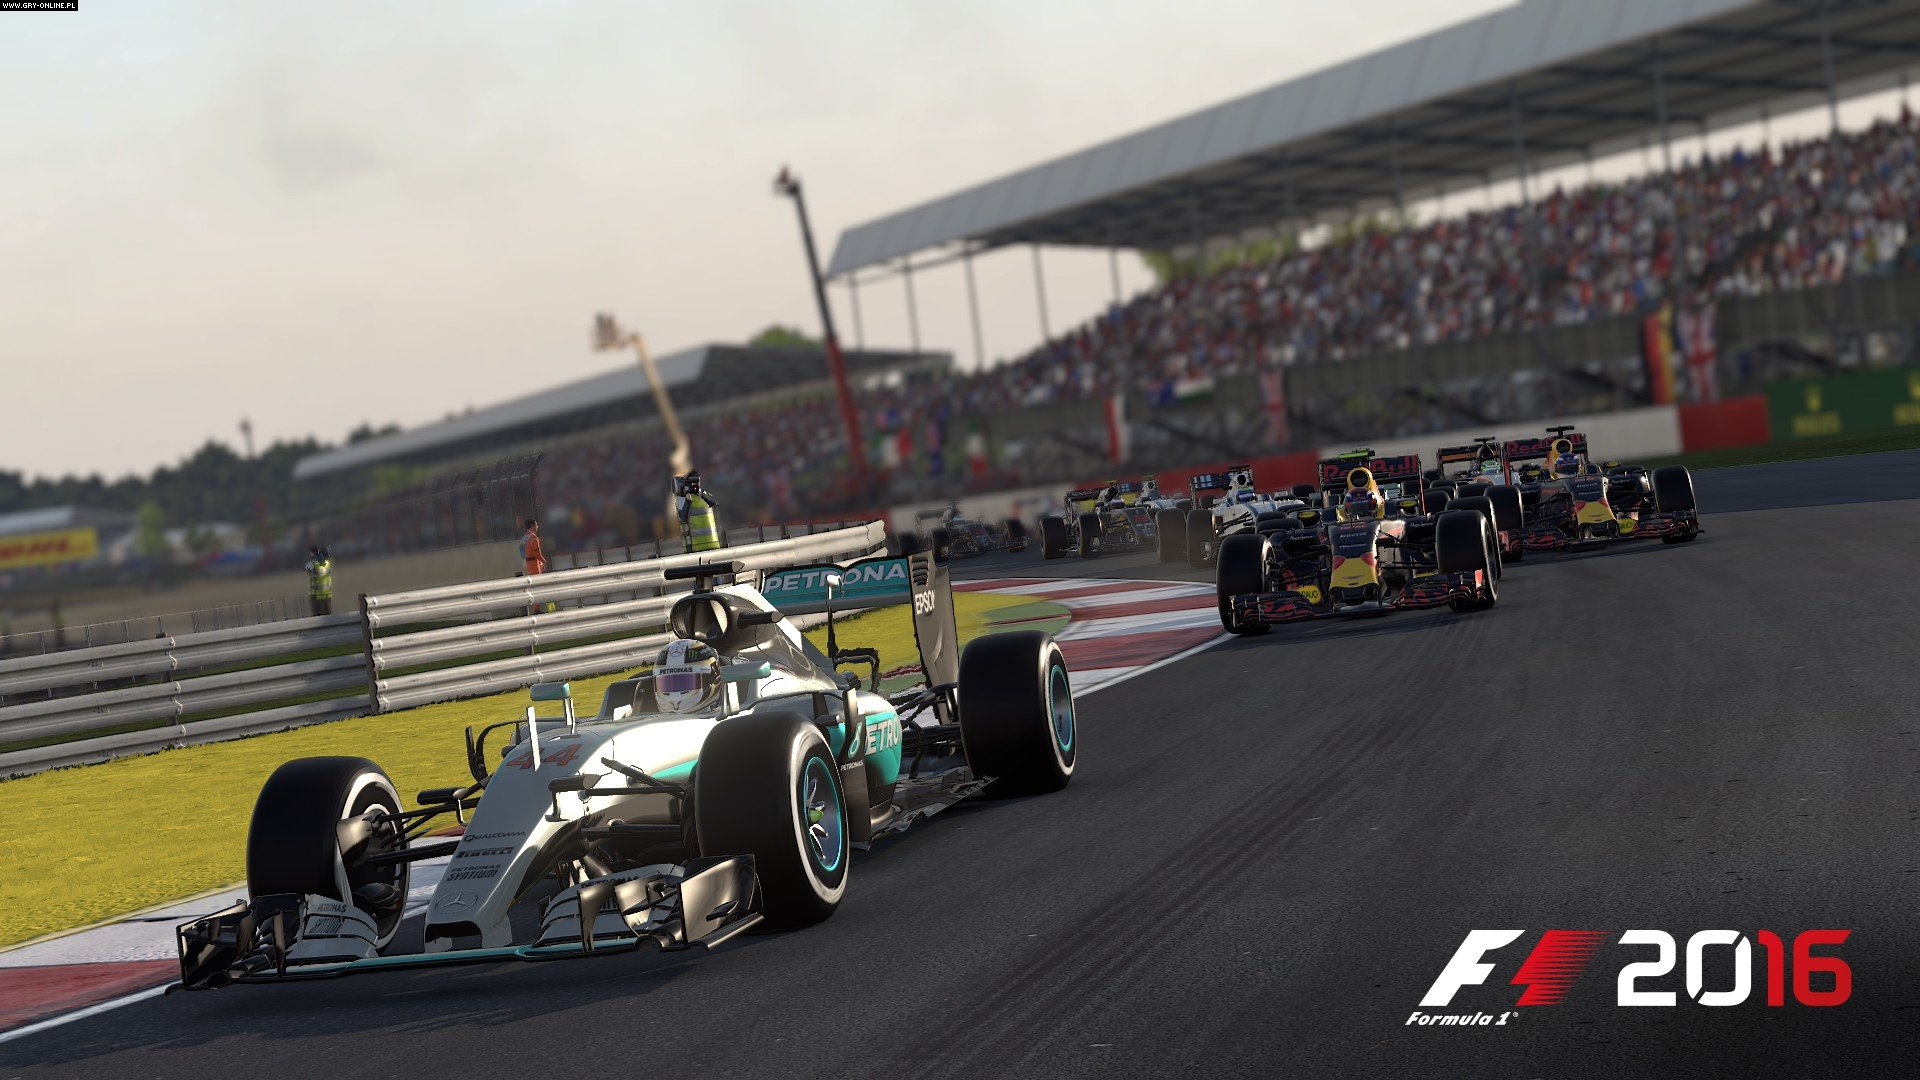 F1 2016 PC, XONE, PS4 Games Image 7/34, Codemasters Software